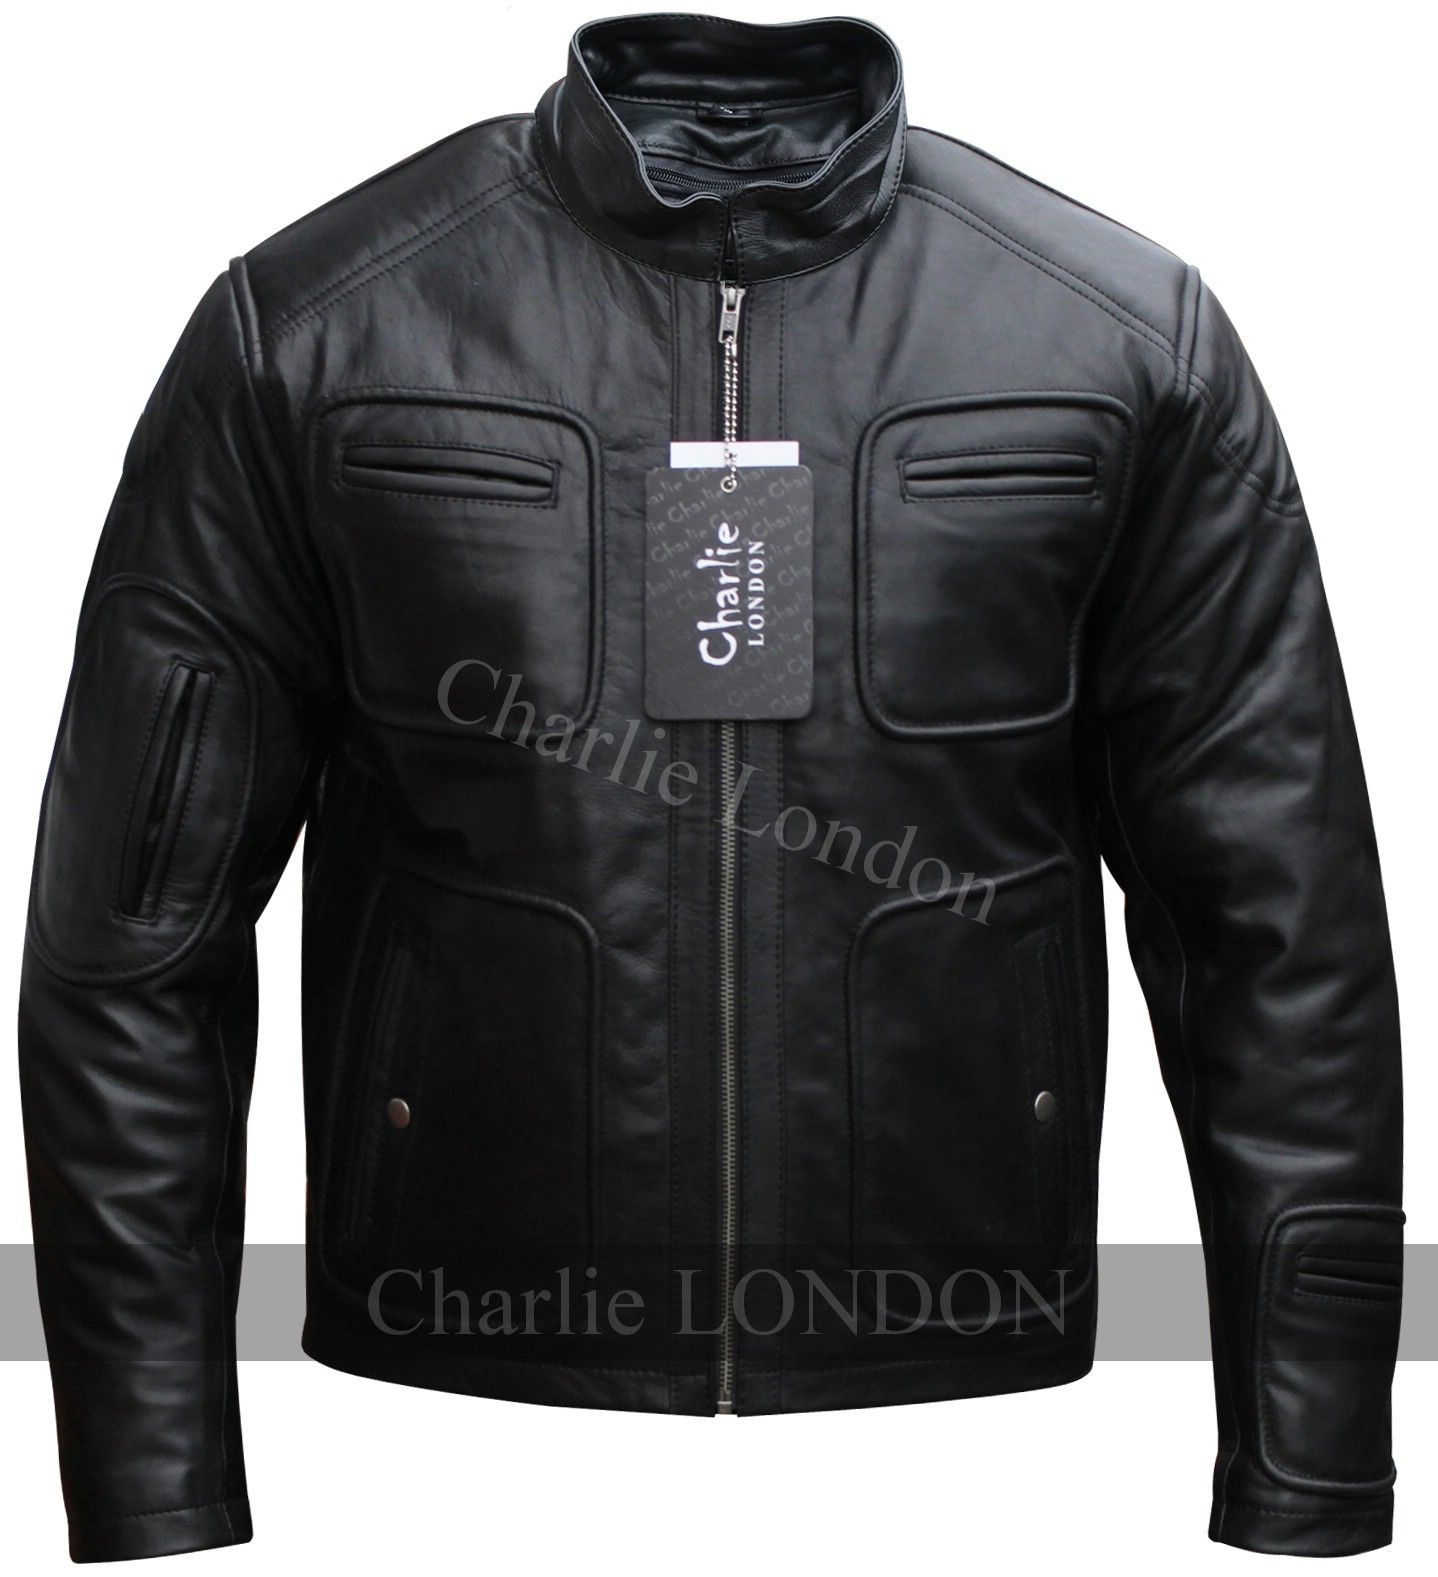 82f47ce7a1da Men's Motorcycle Jackets Archives | Leather Jackets in London for ...